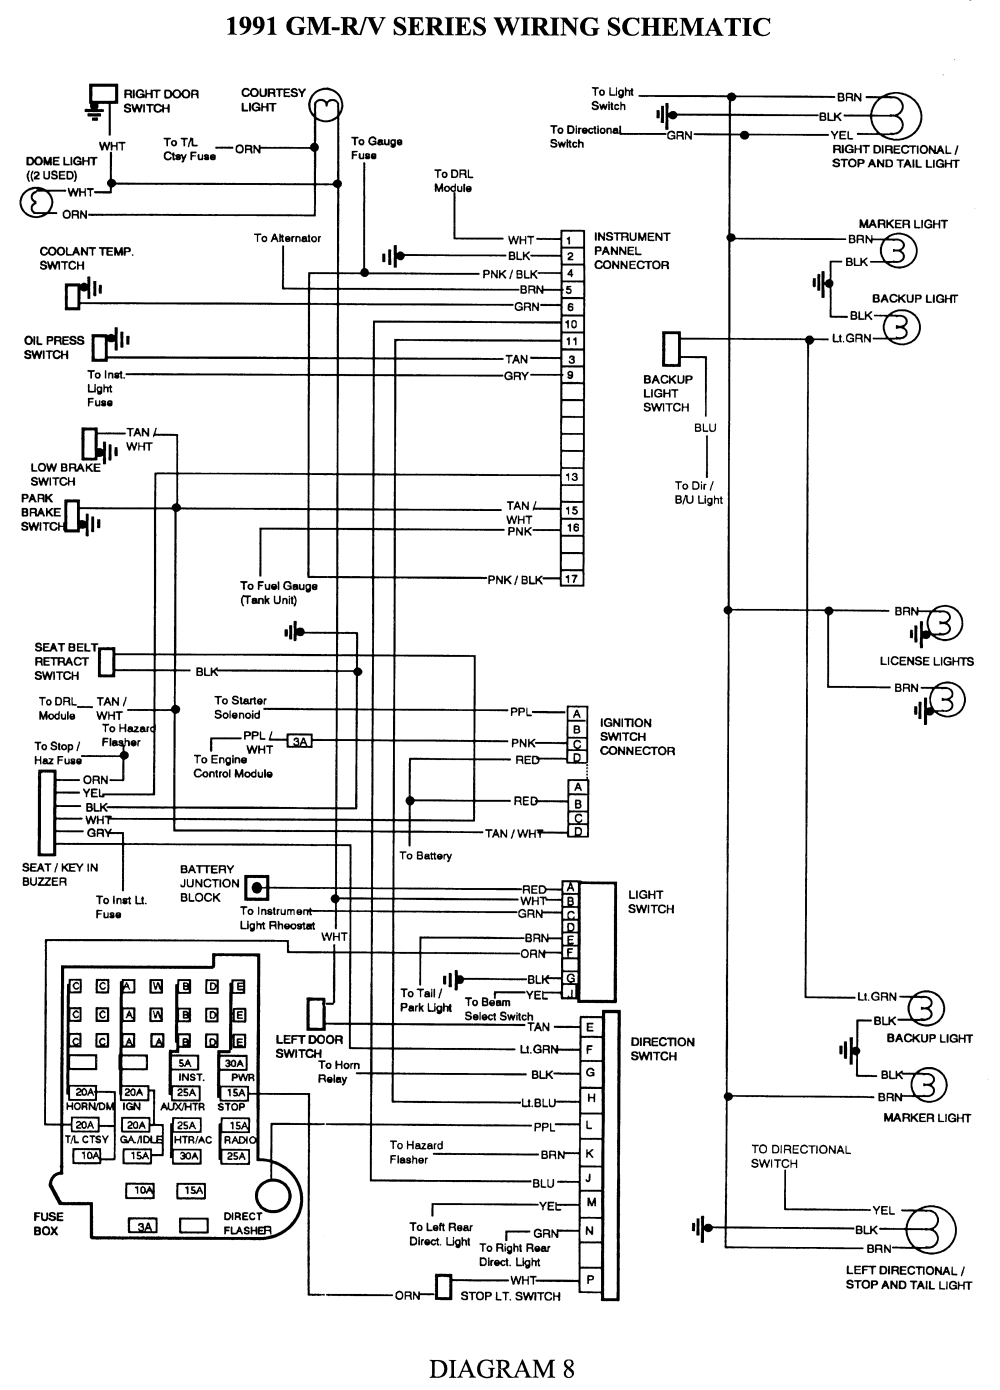 Fuse Diagram For 2002 Chevy Blazer